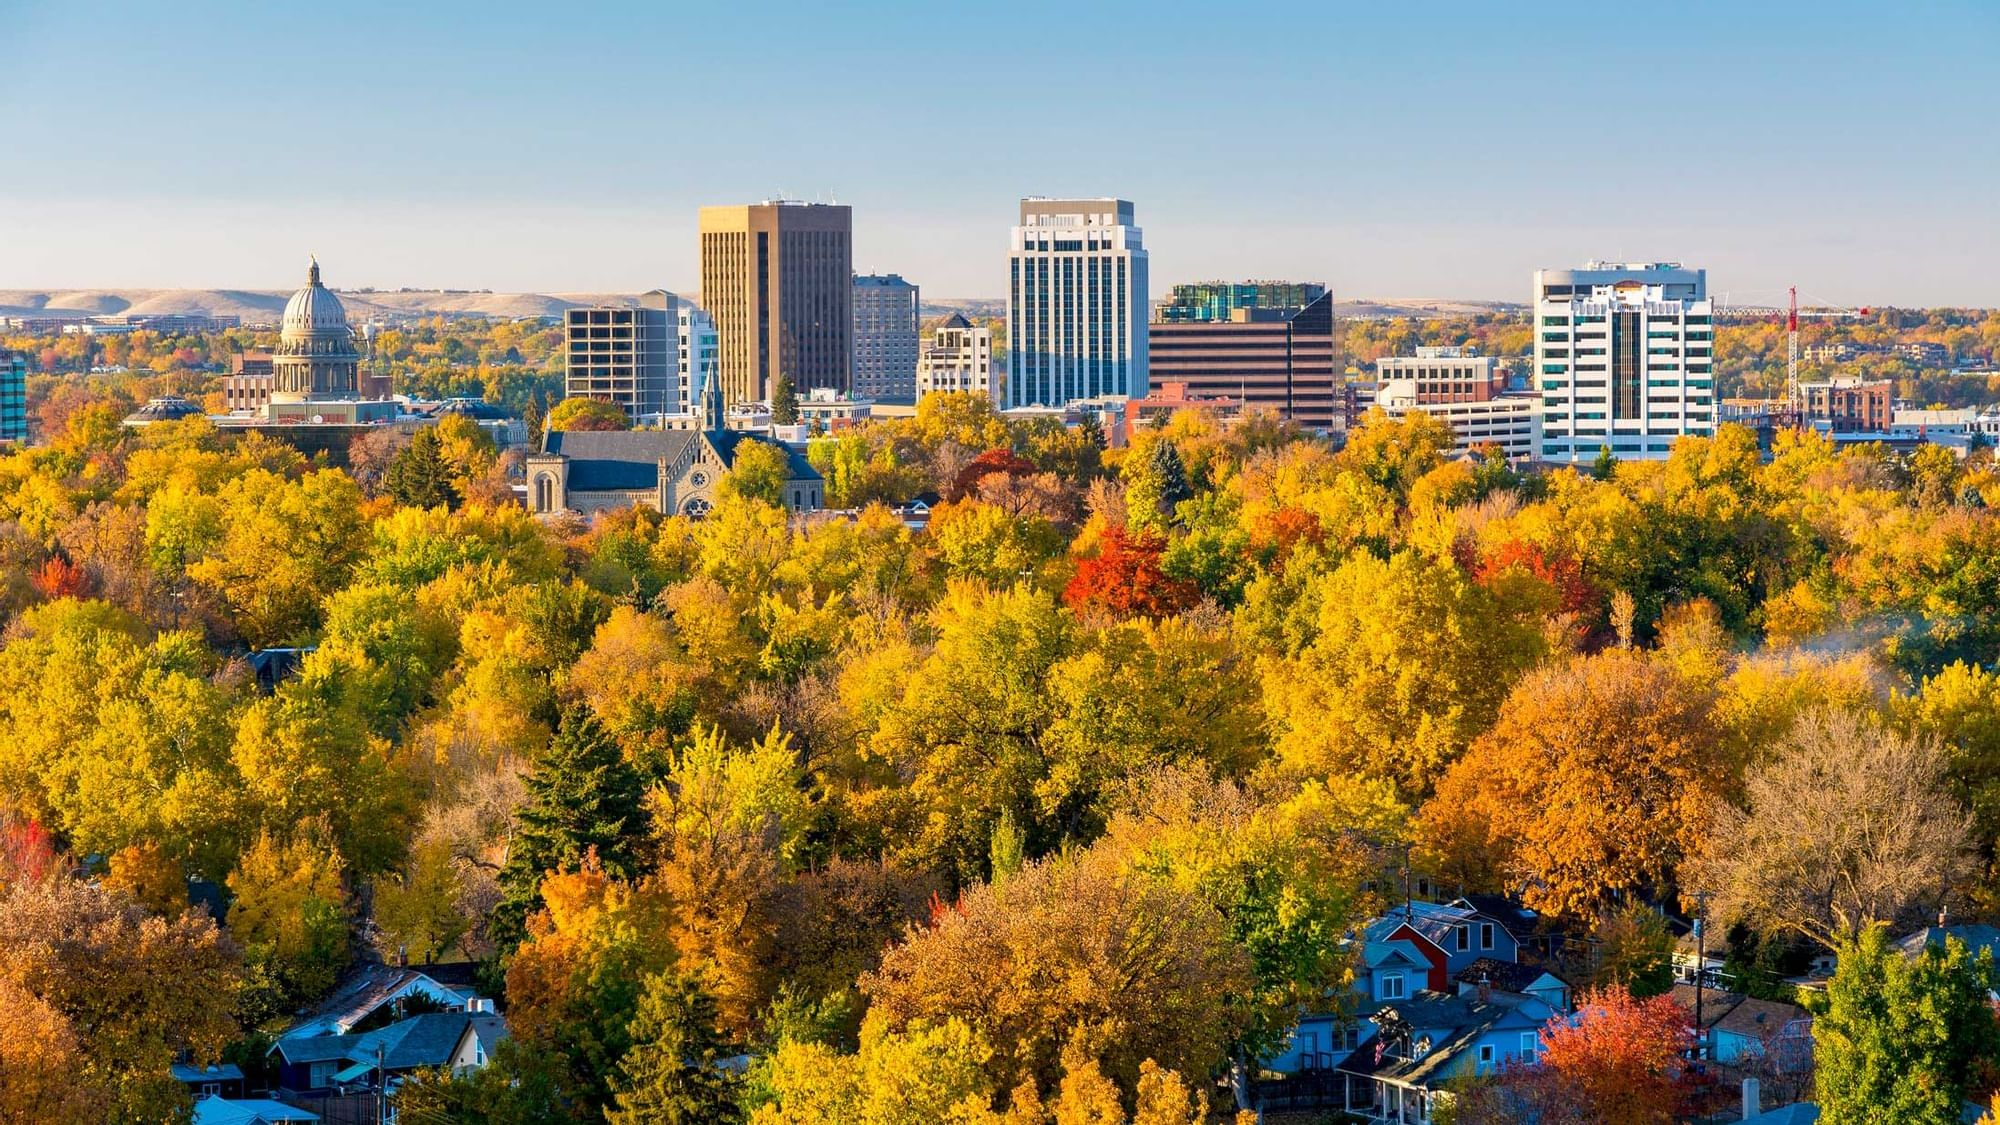 colorful trees on the outskirts of a city